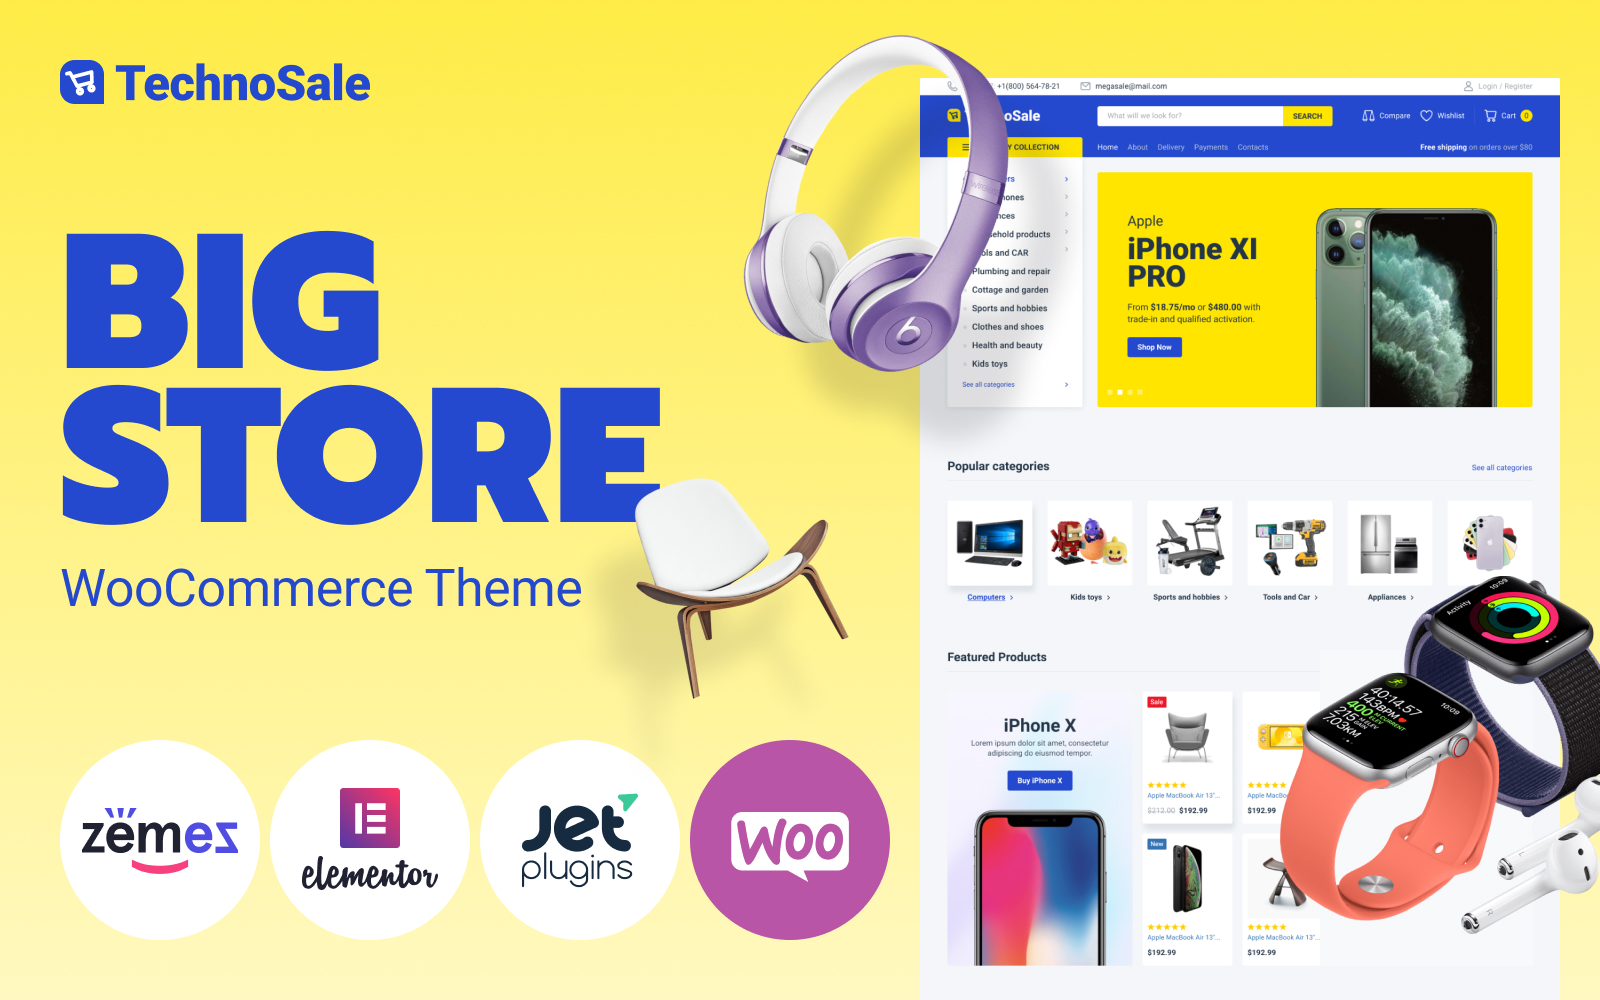 TechnoSale-A-Modern-Online-ECommerce-Grocery-Store-WooCommerce-Theme